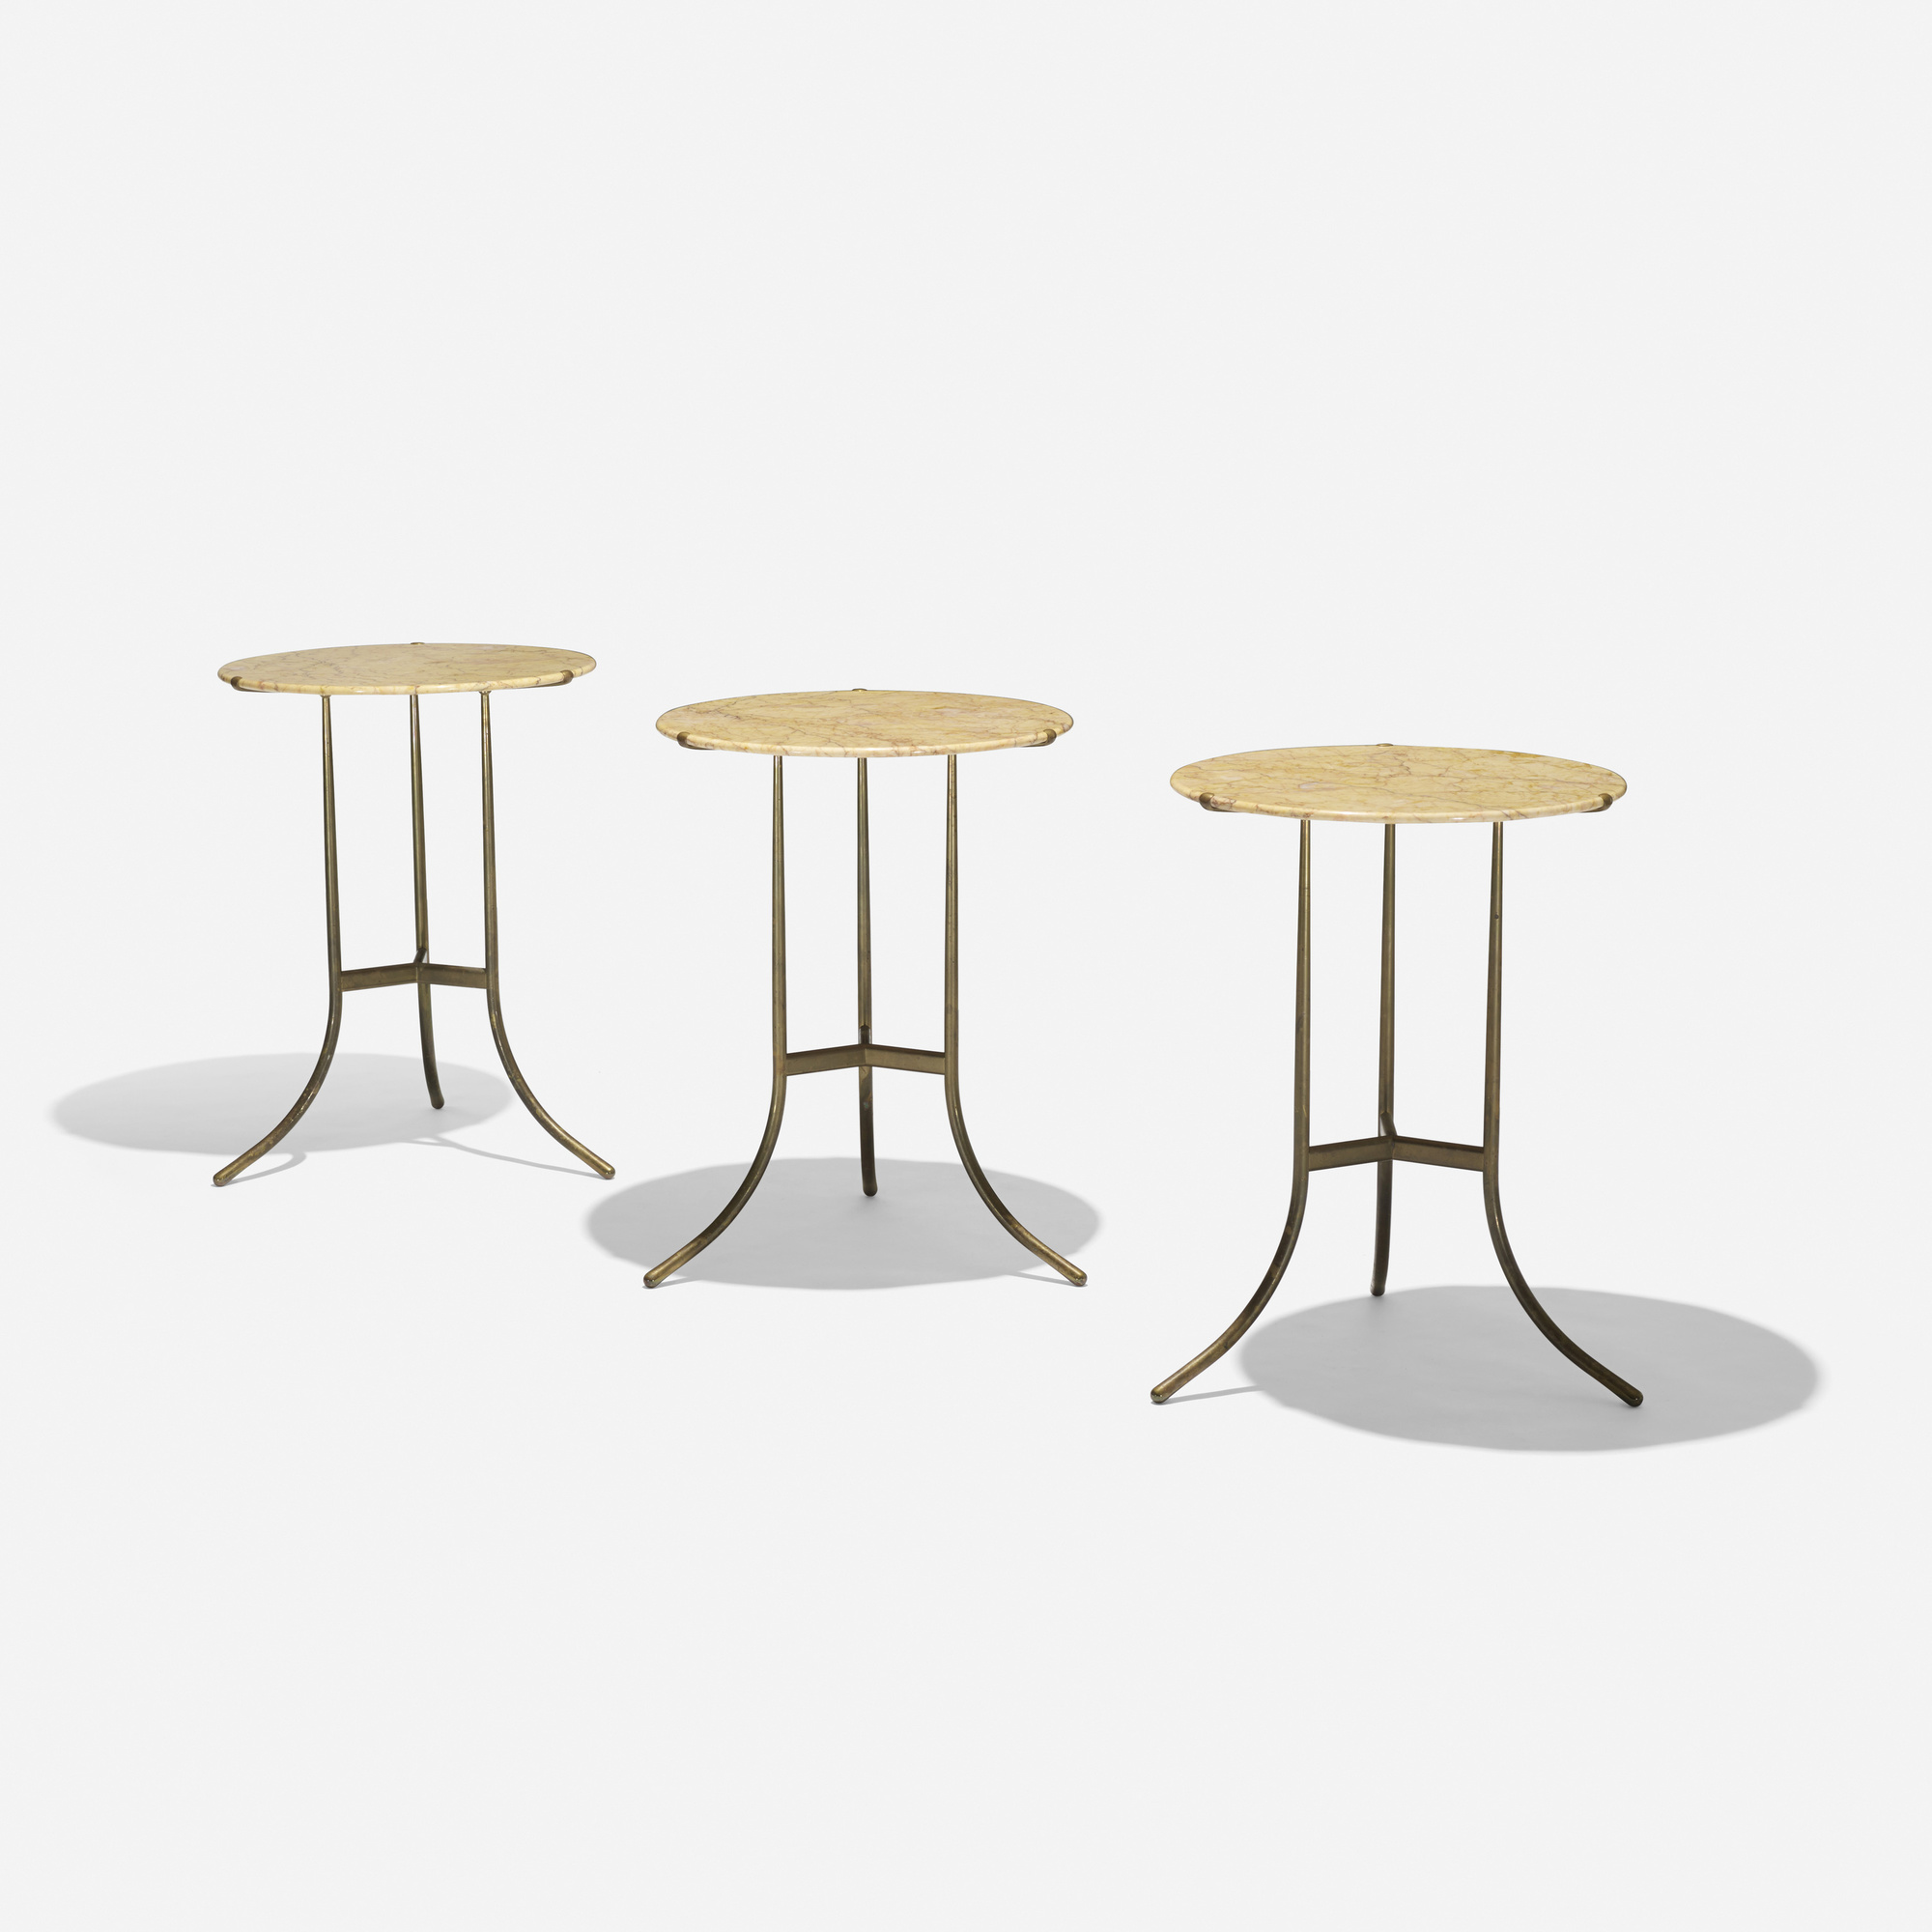 396: Cedric Hartman / occasional tables, set of three (1 of 4)